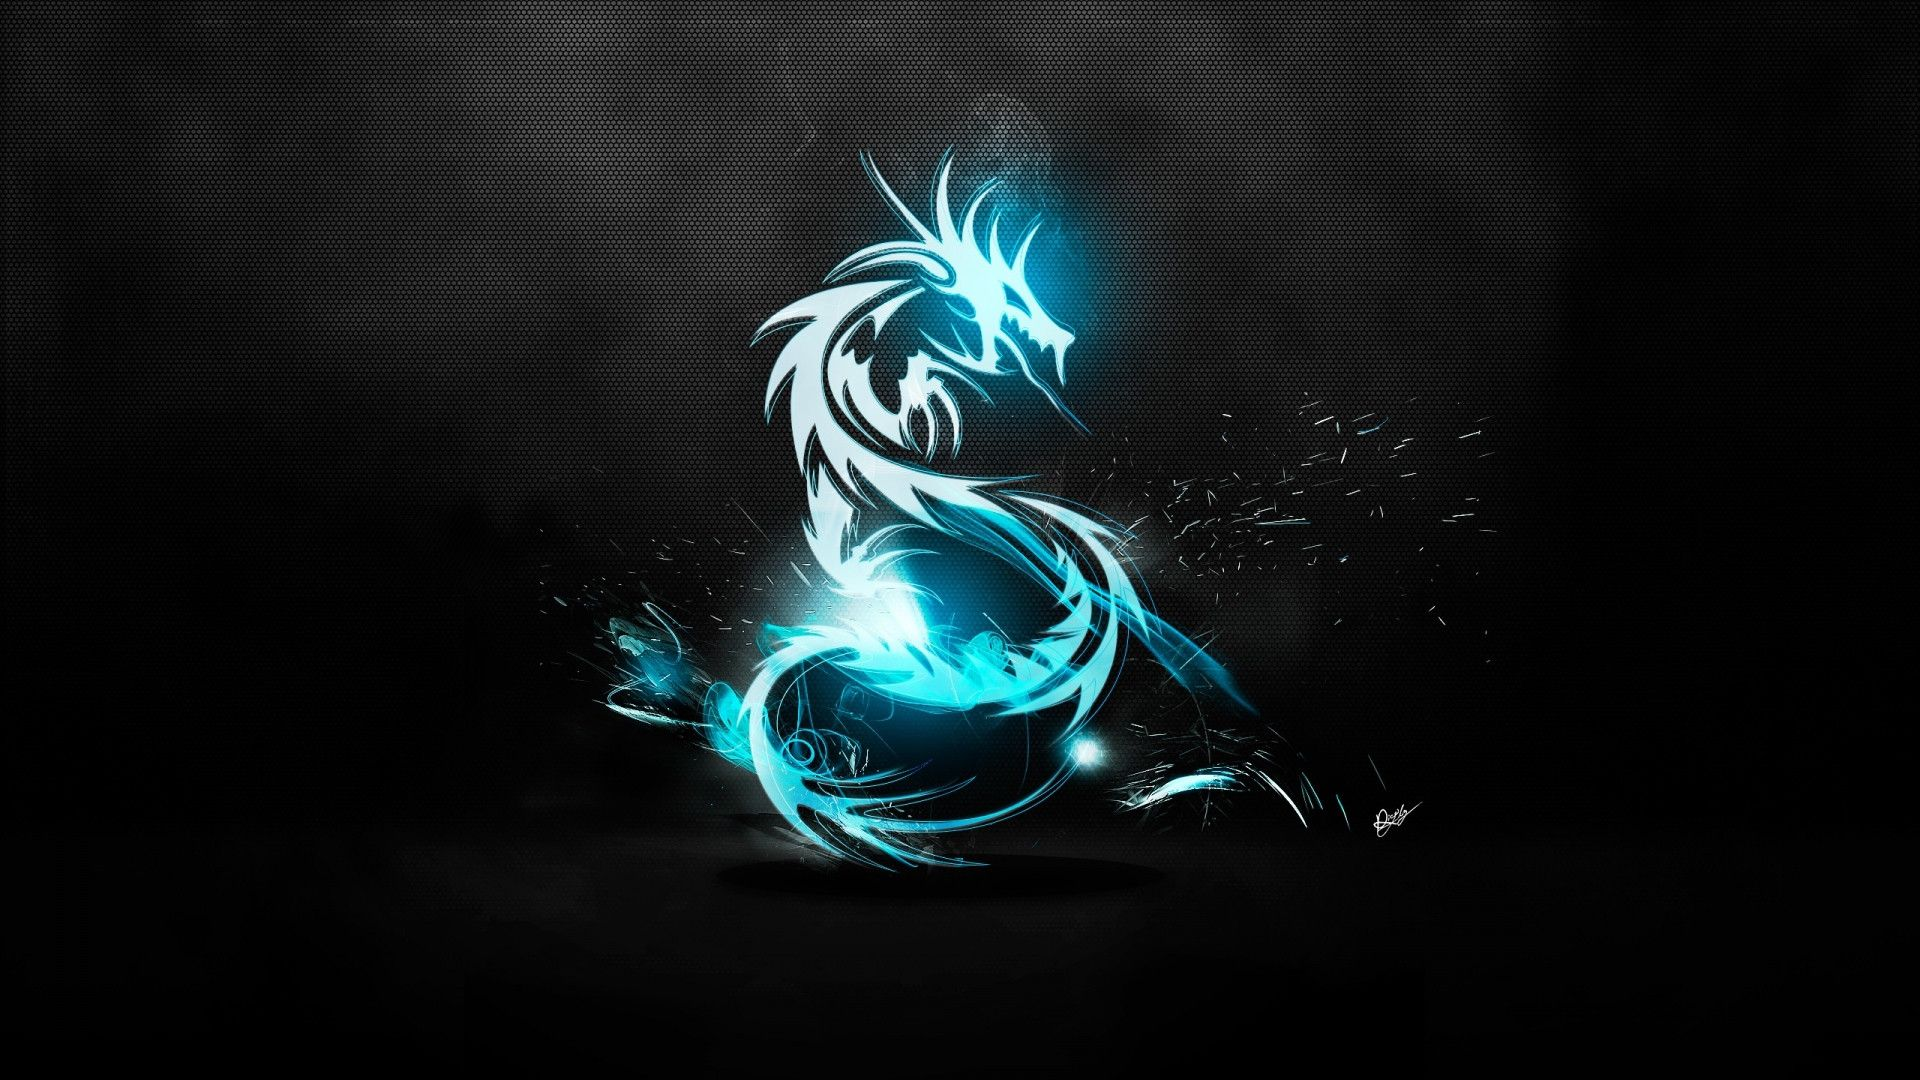 Amazing-Dragon-1920-X-1080-Need-iPhone-S-Plus-Background-for-IPhoneSP-wallpaper-wpc9002160